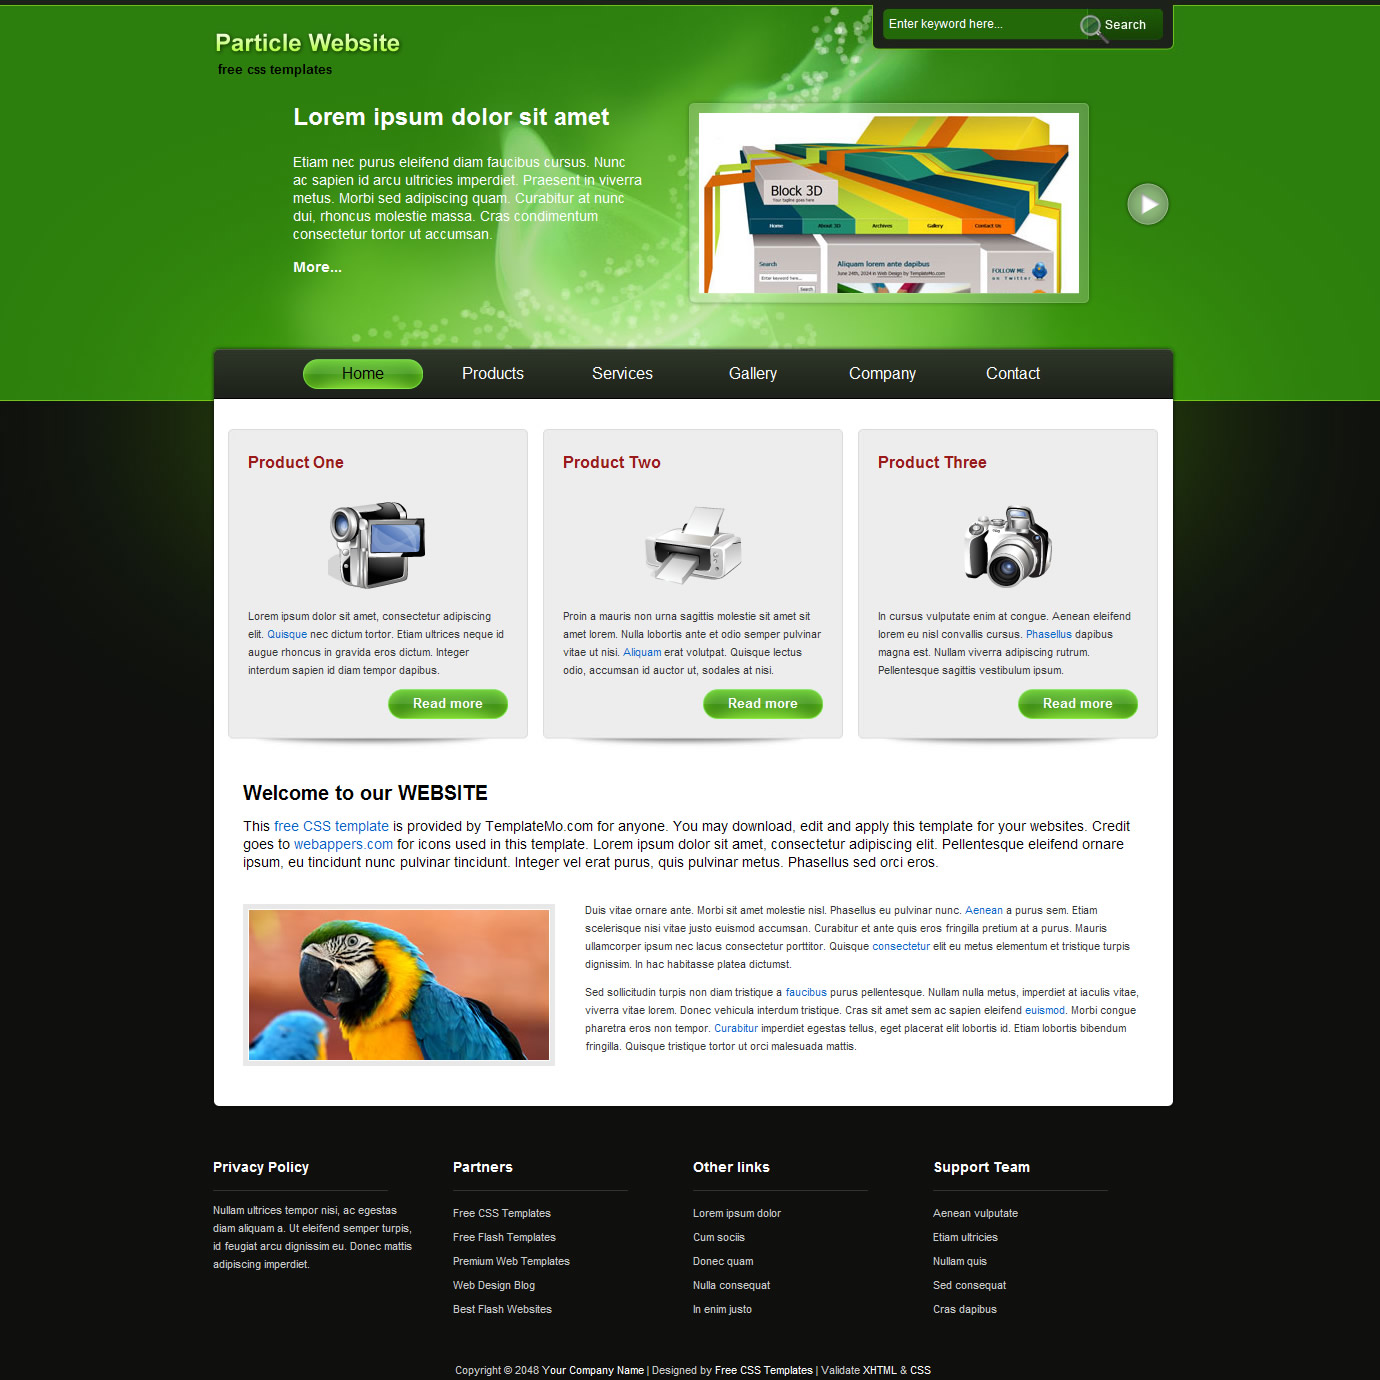 Website templates rich image and wallpaper An website